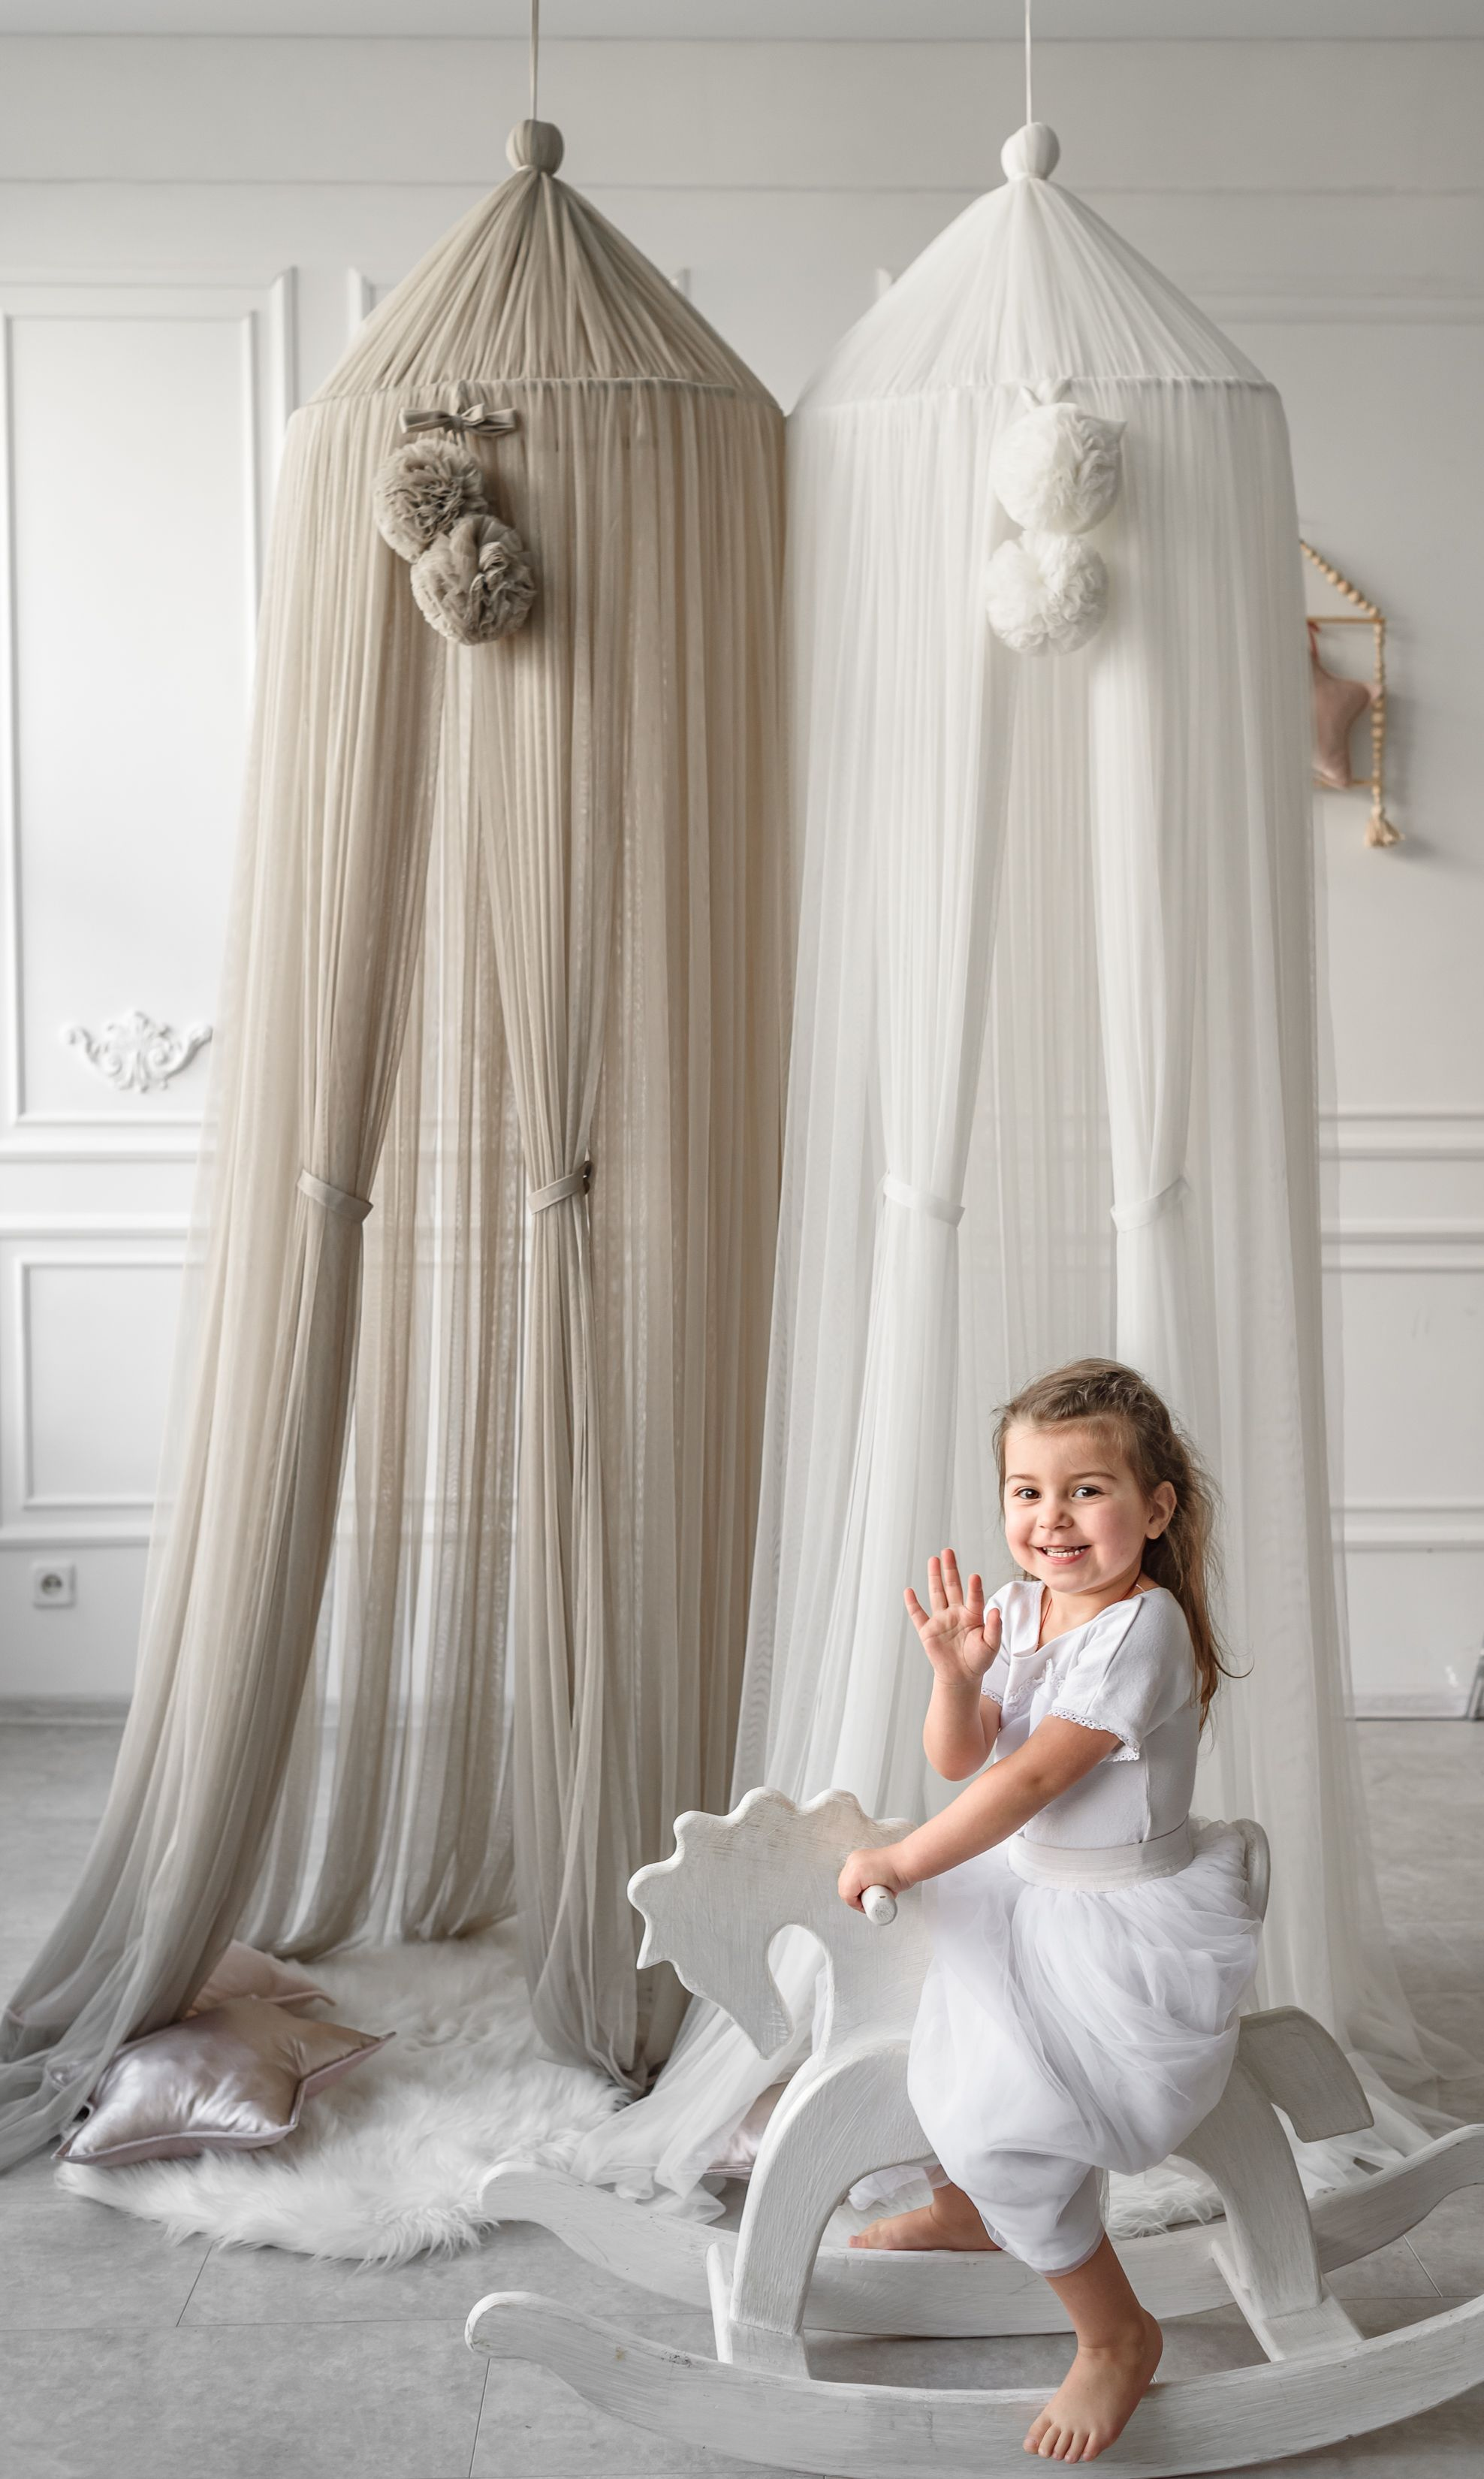 Baby Bed Canopy Kids Crib Netting Palace Style Children Room Curtain Dome Mosquito Net Cotton Baby Girls Mantle Nets